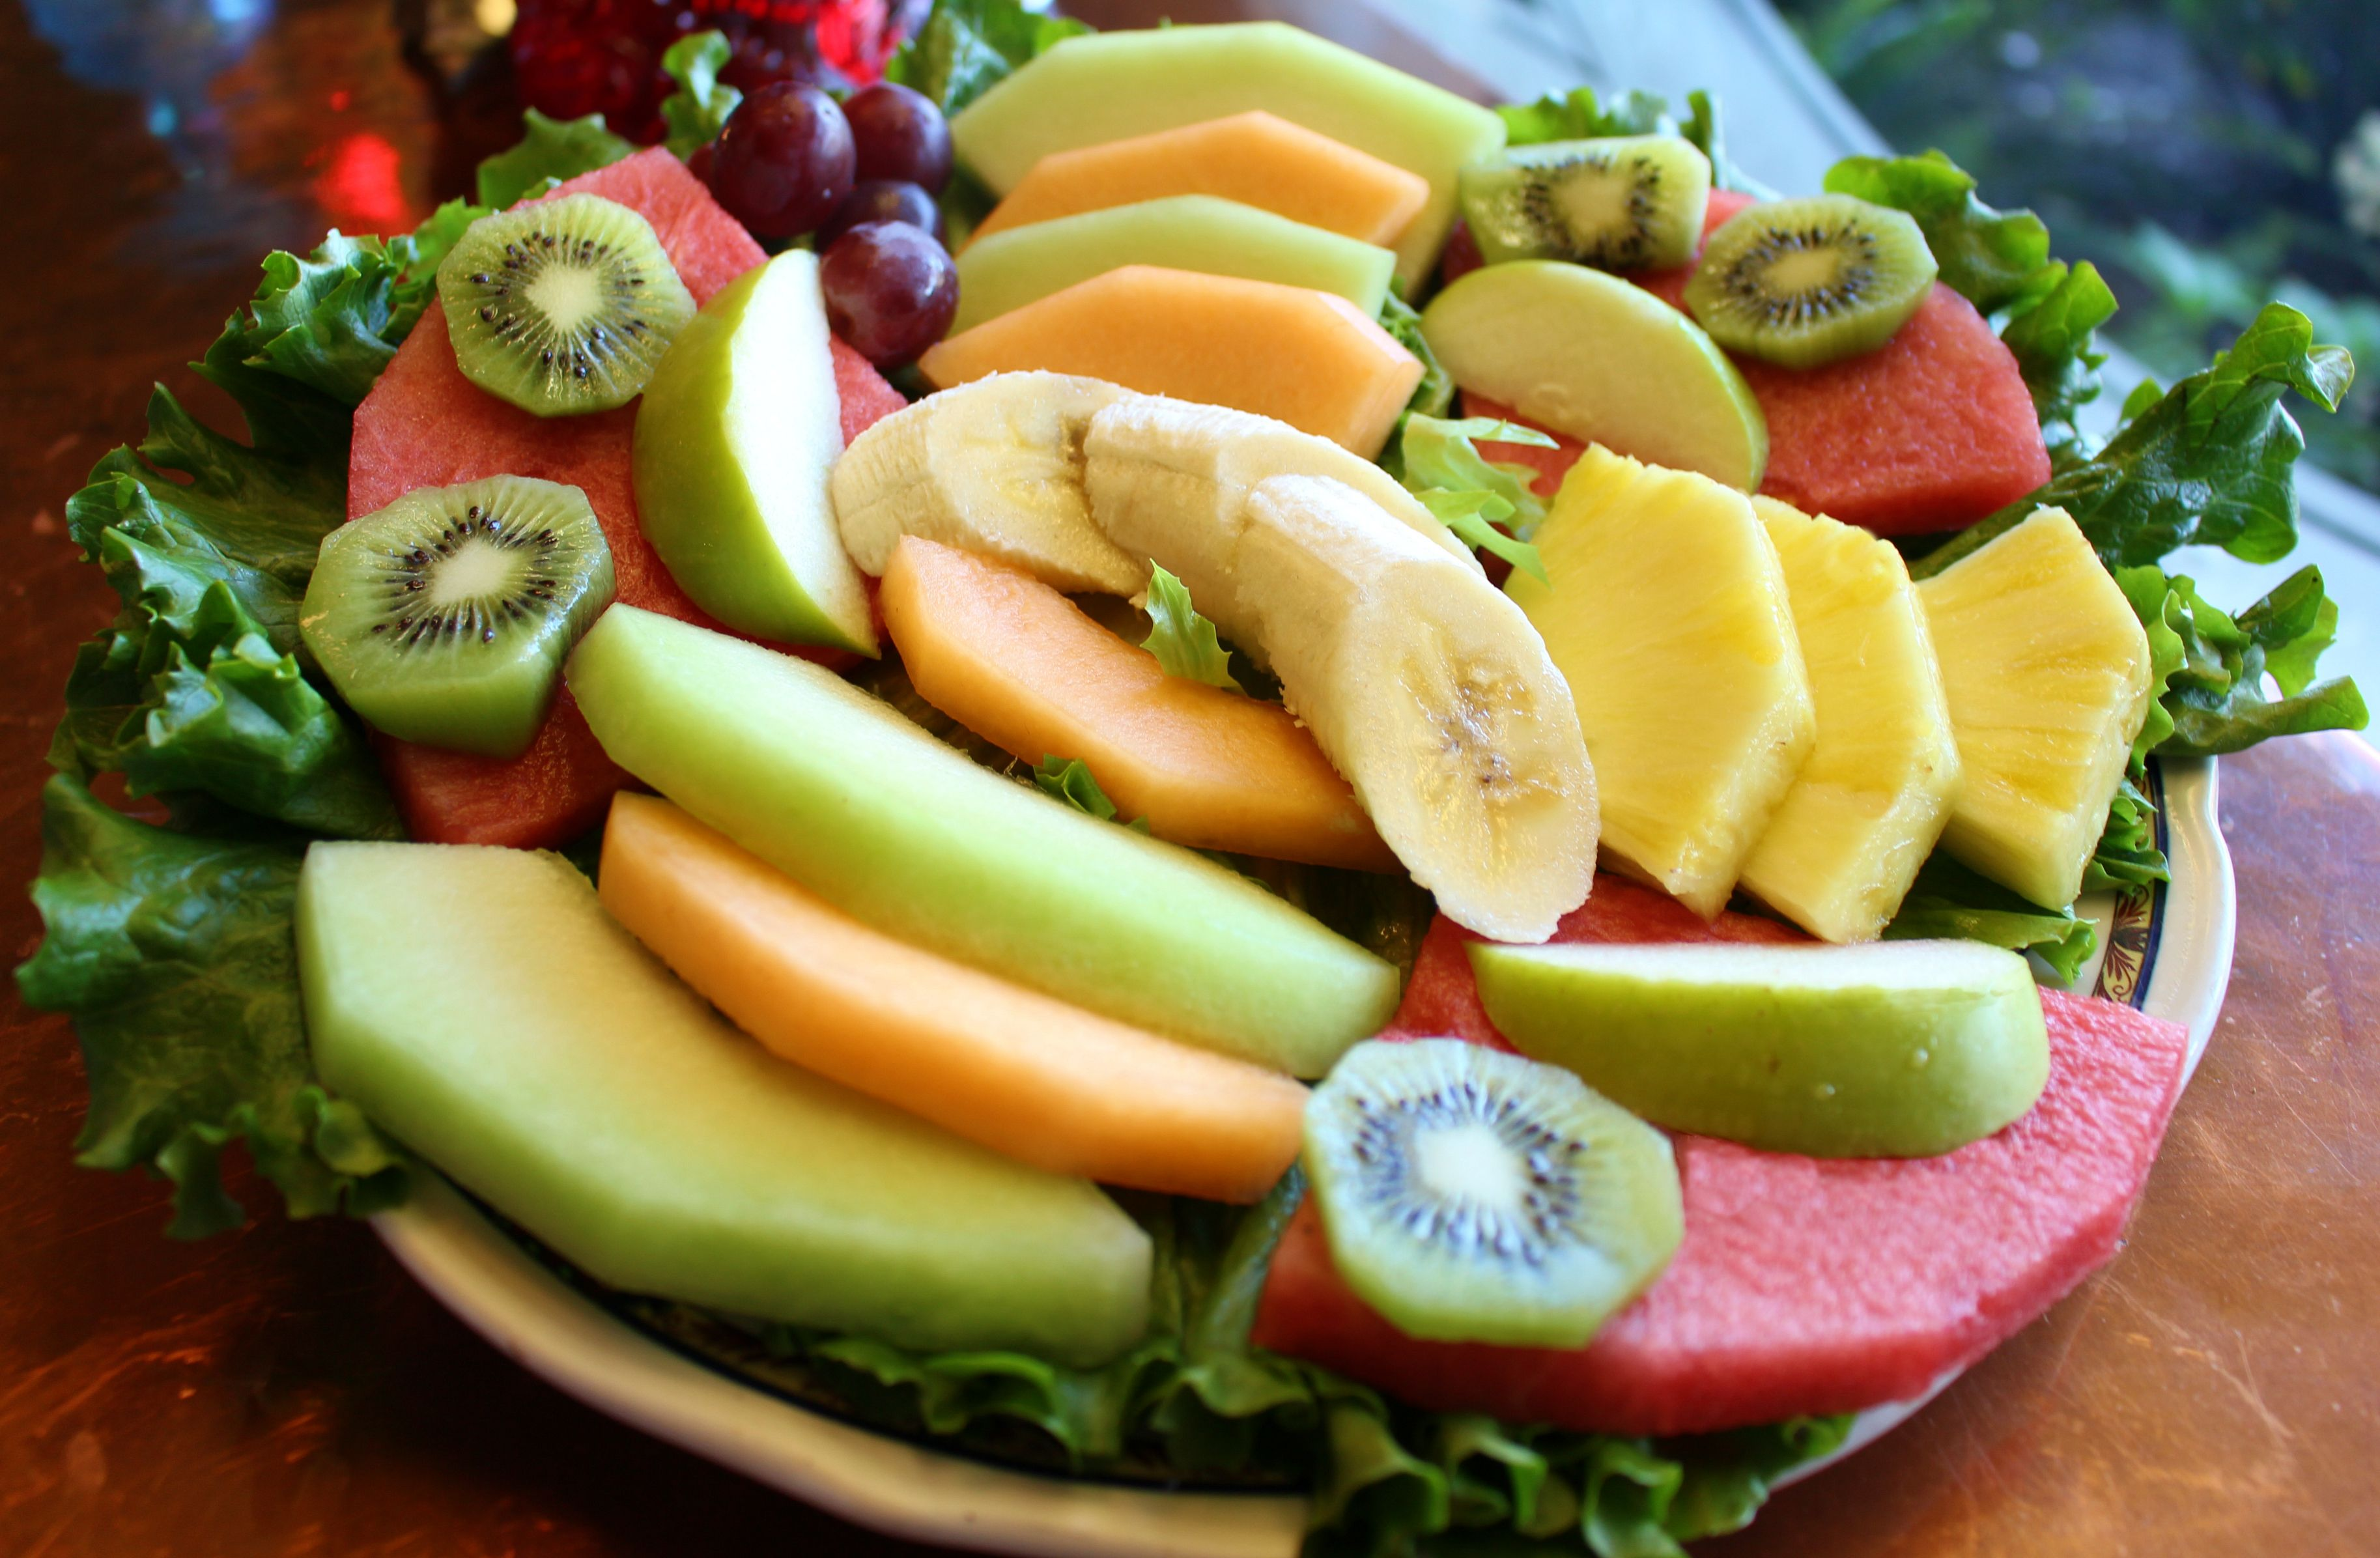 Miraculous Fresh Assorted Fruits Plate Try It With Your Choice Of Download Free Architecture Designs Rallybritishbridgeorg